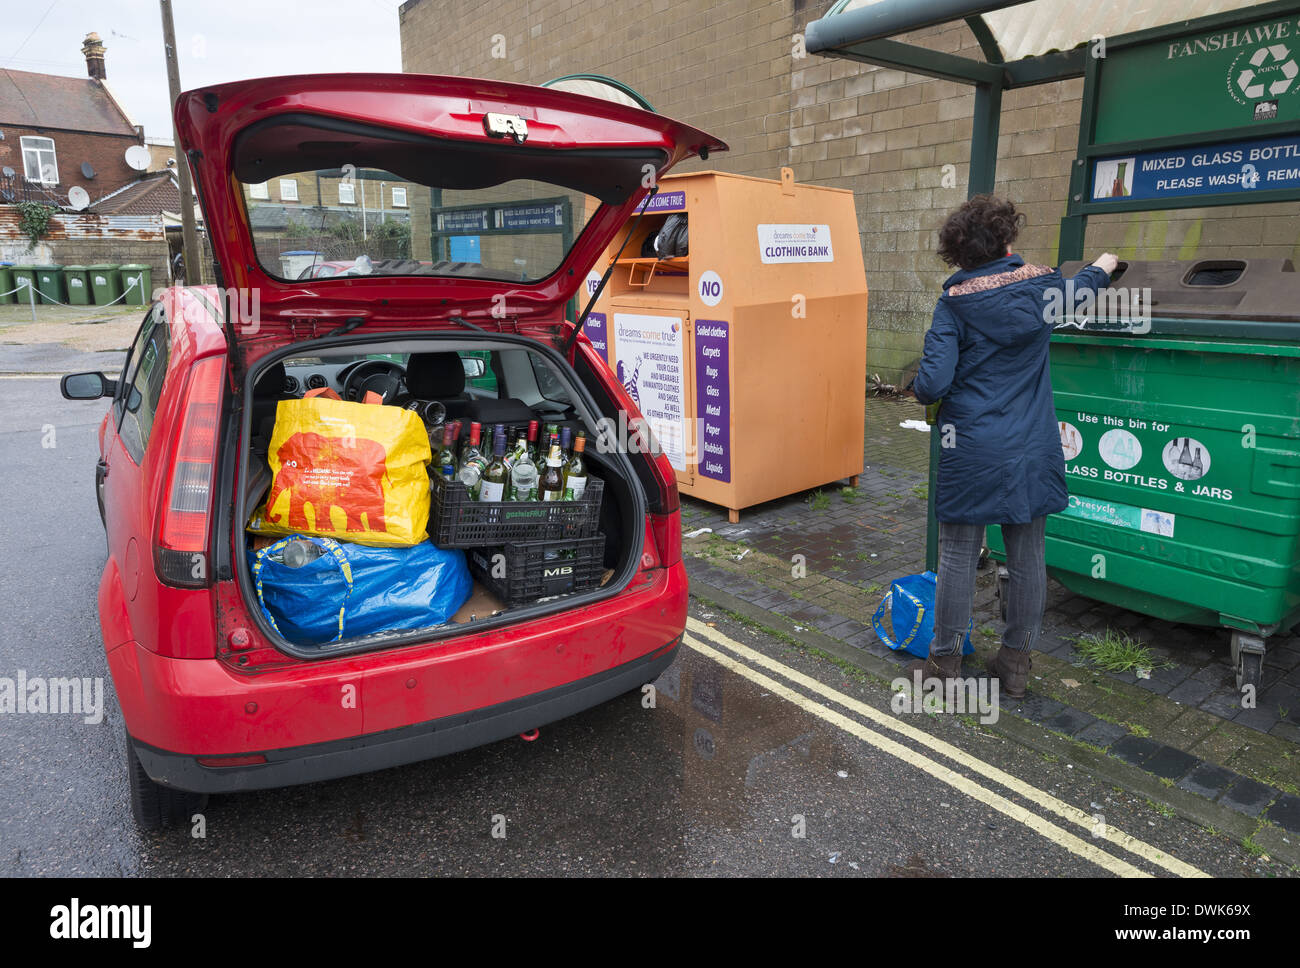 Women with a car boot full of bottles at a recycling bottle bank - Stock Image